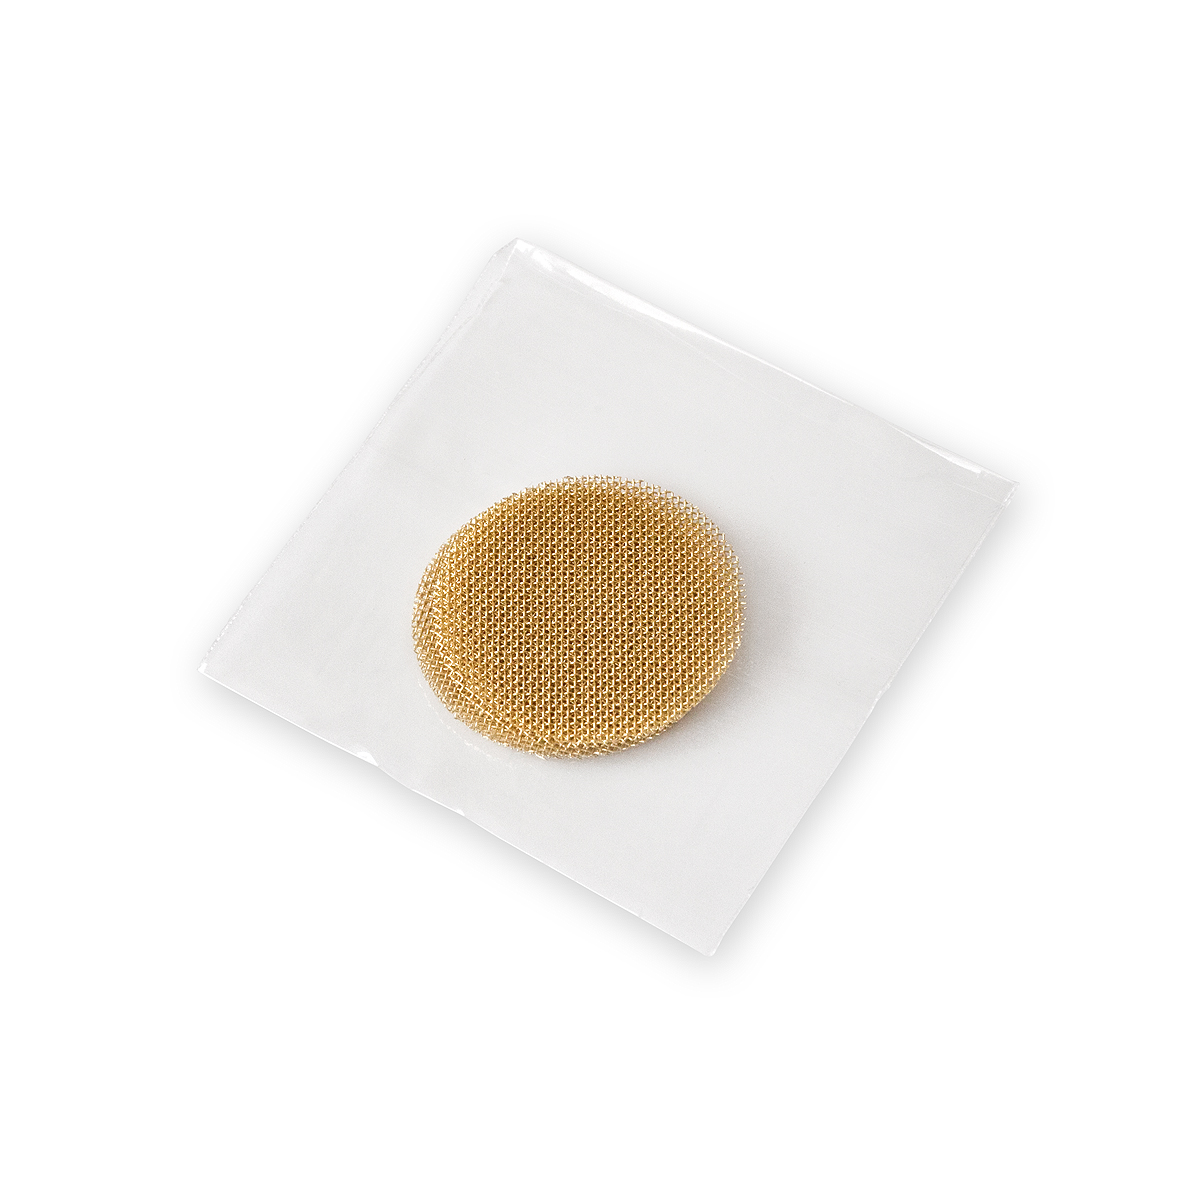 20mm Gauze Pipe Screens, Brass (in bags of 5)